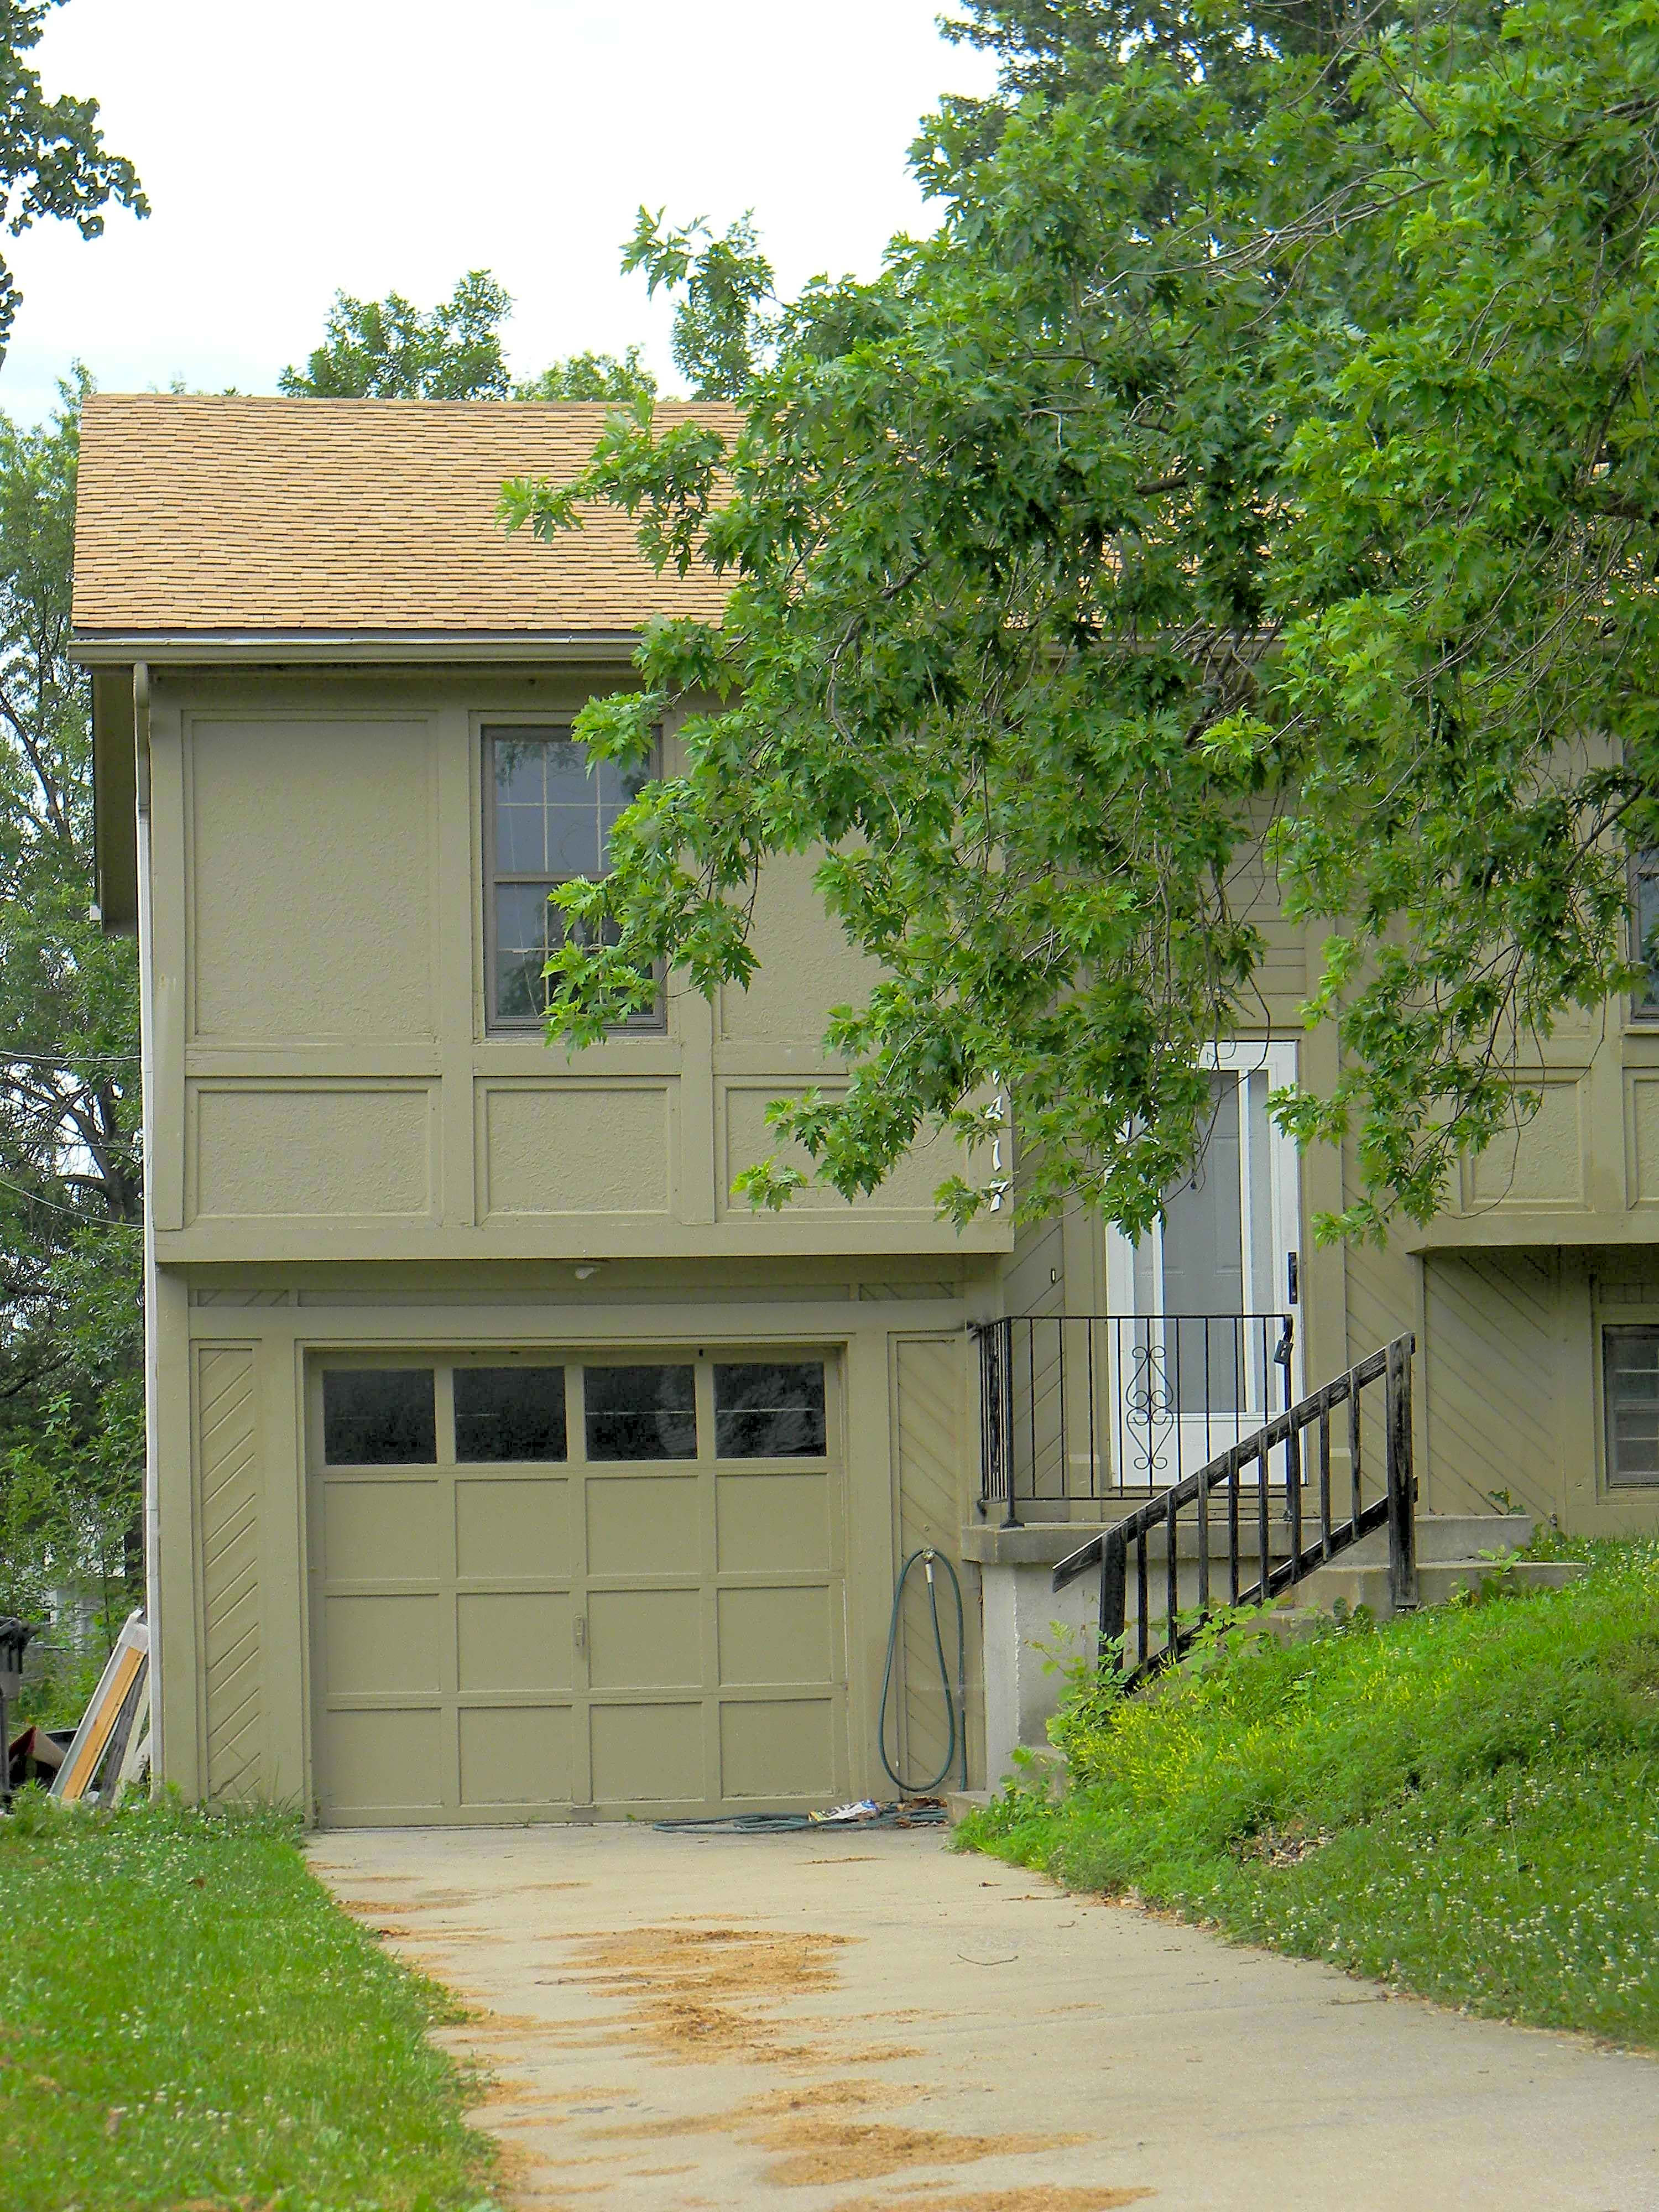 Duplex for Rent in Olathe